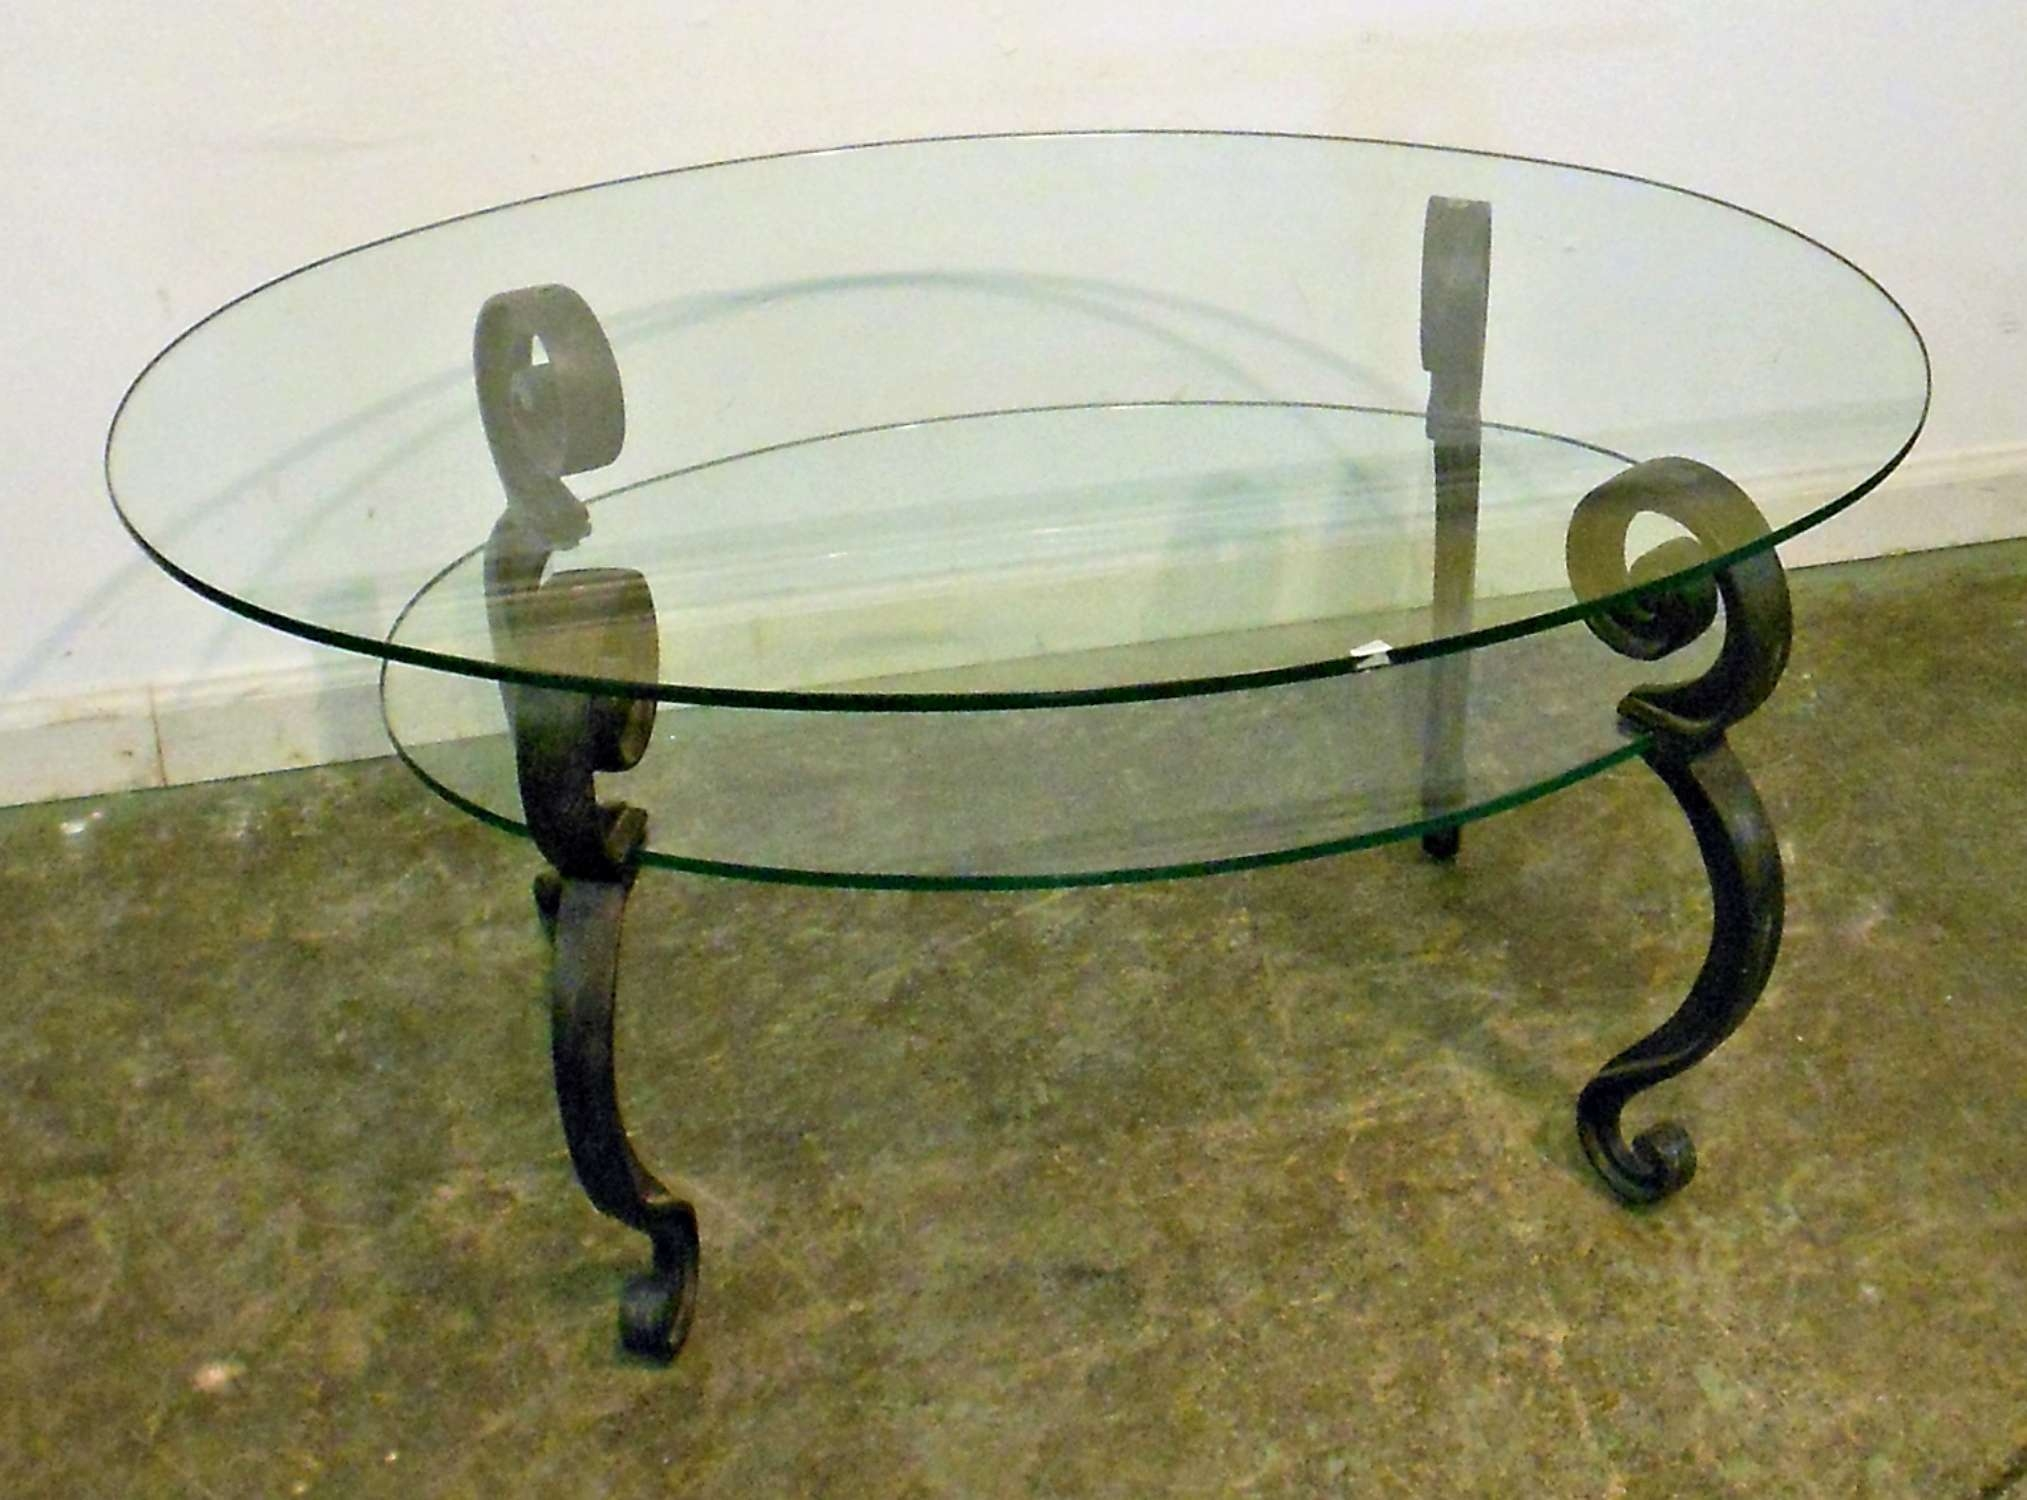 Vintage Glass Top Coffee Table With Black Metal Legs And Shelves Inside 2017 Vintage Glass Coffee Tables (Gallery 8 of 20)